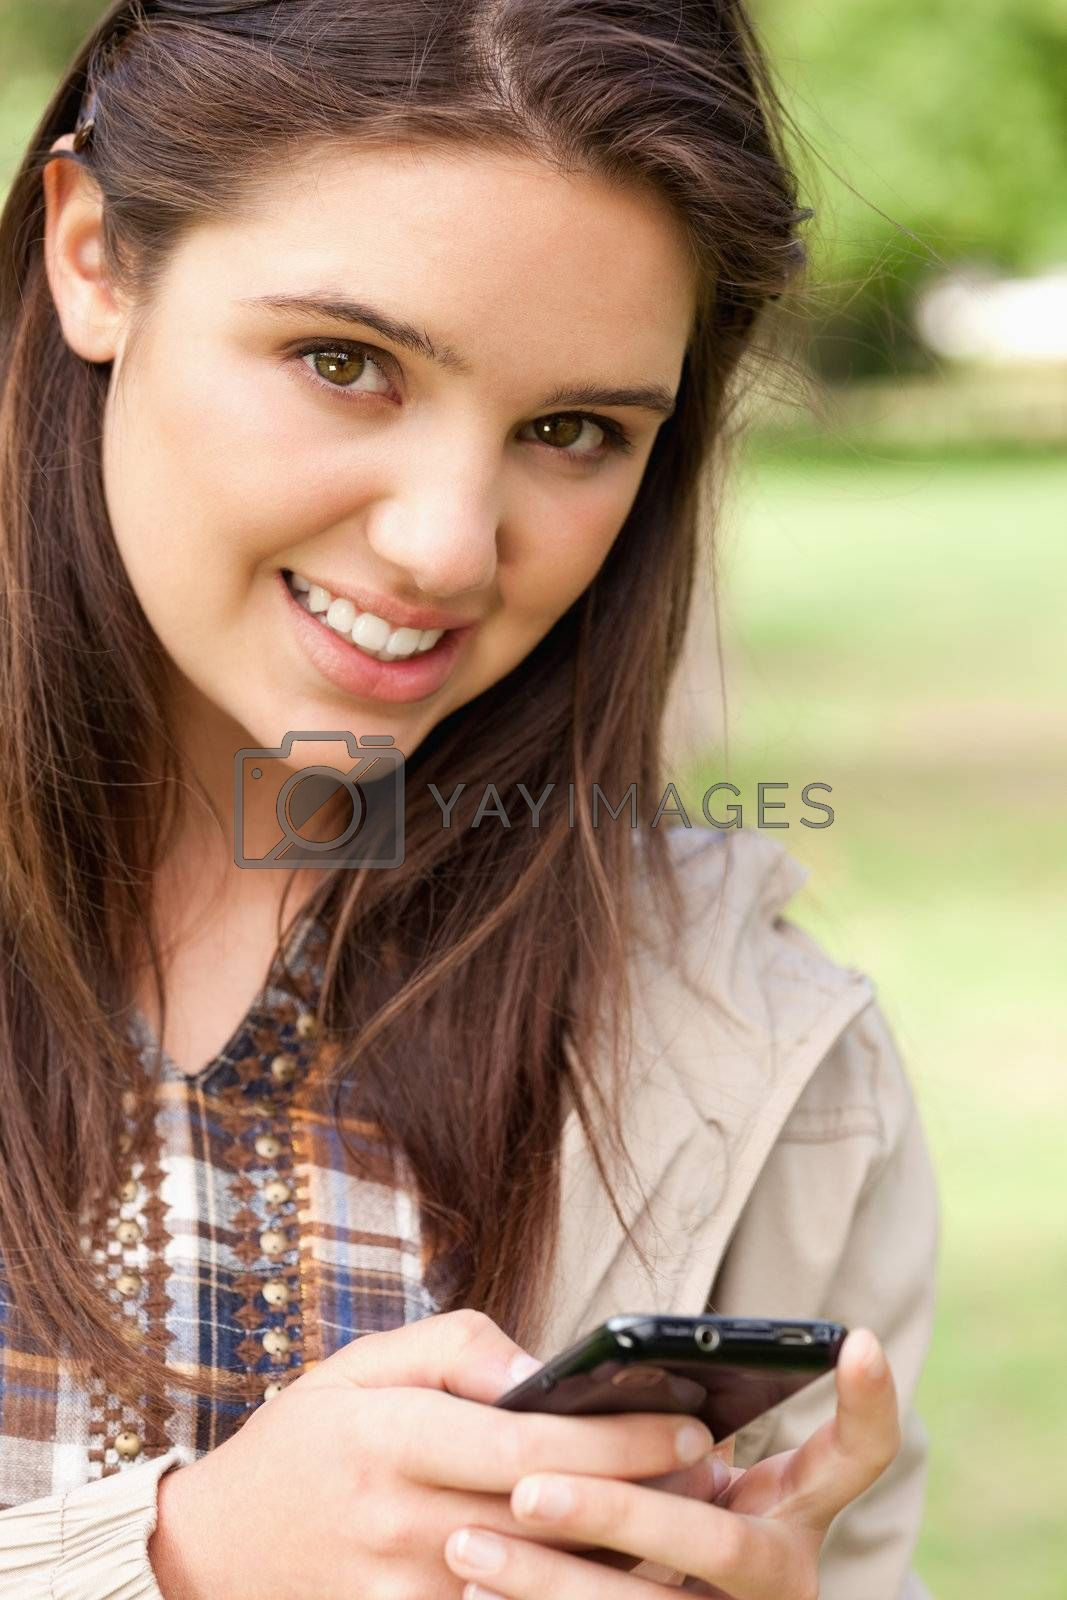 Portrait of a cute teenager using a smartphone in a park